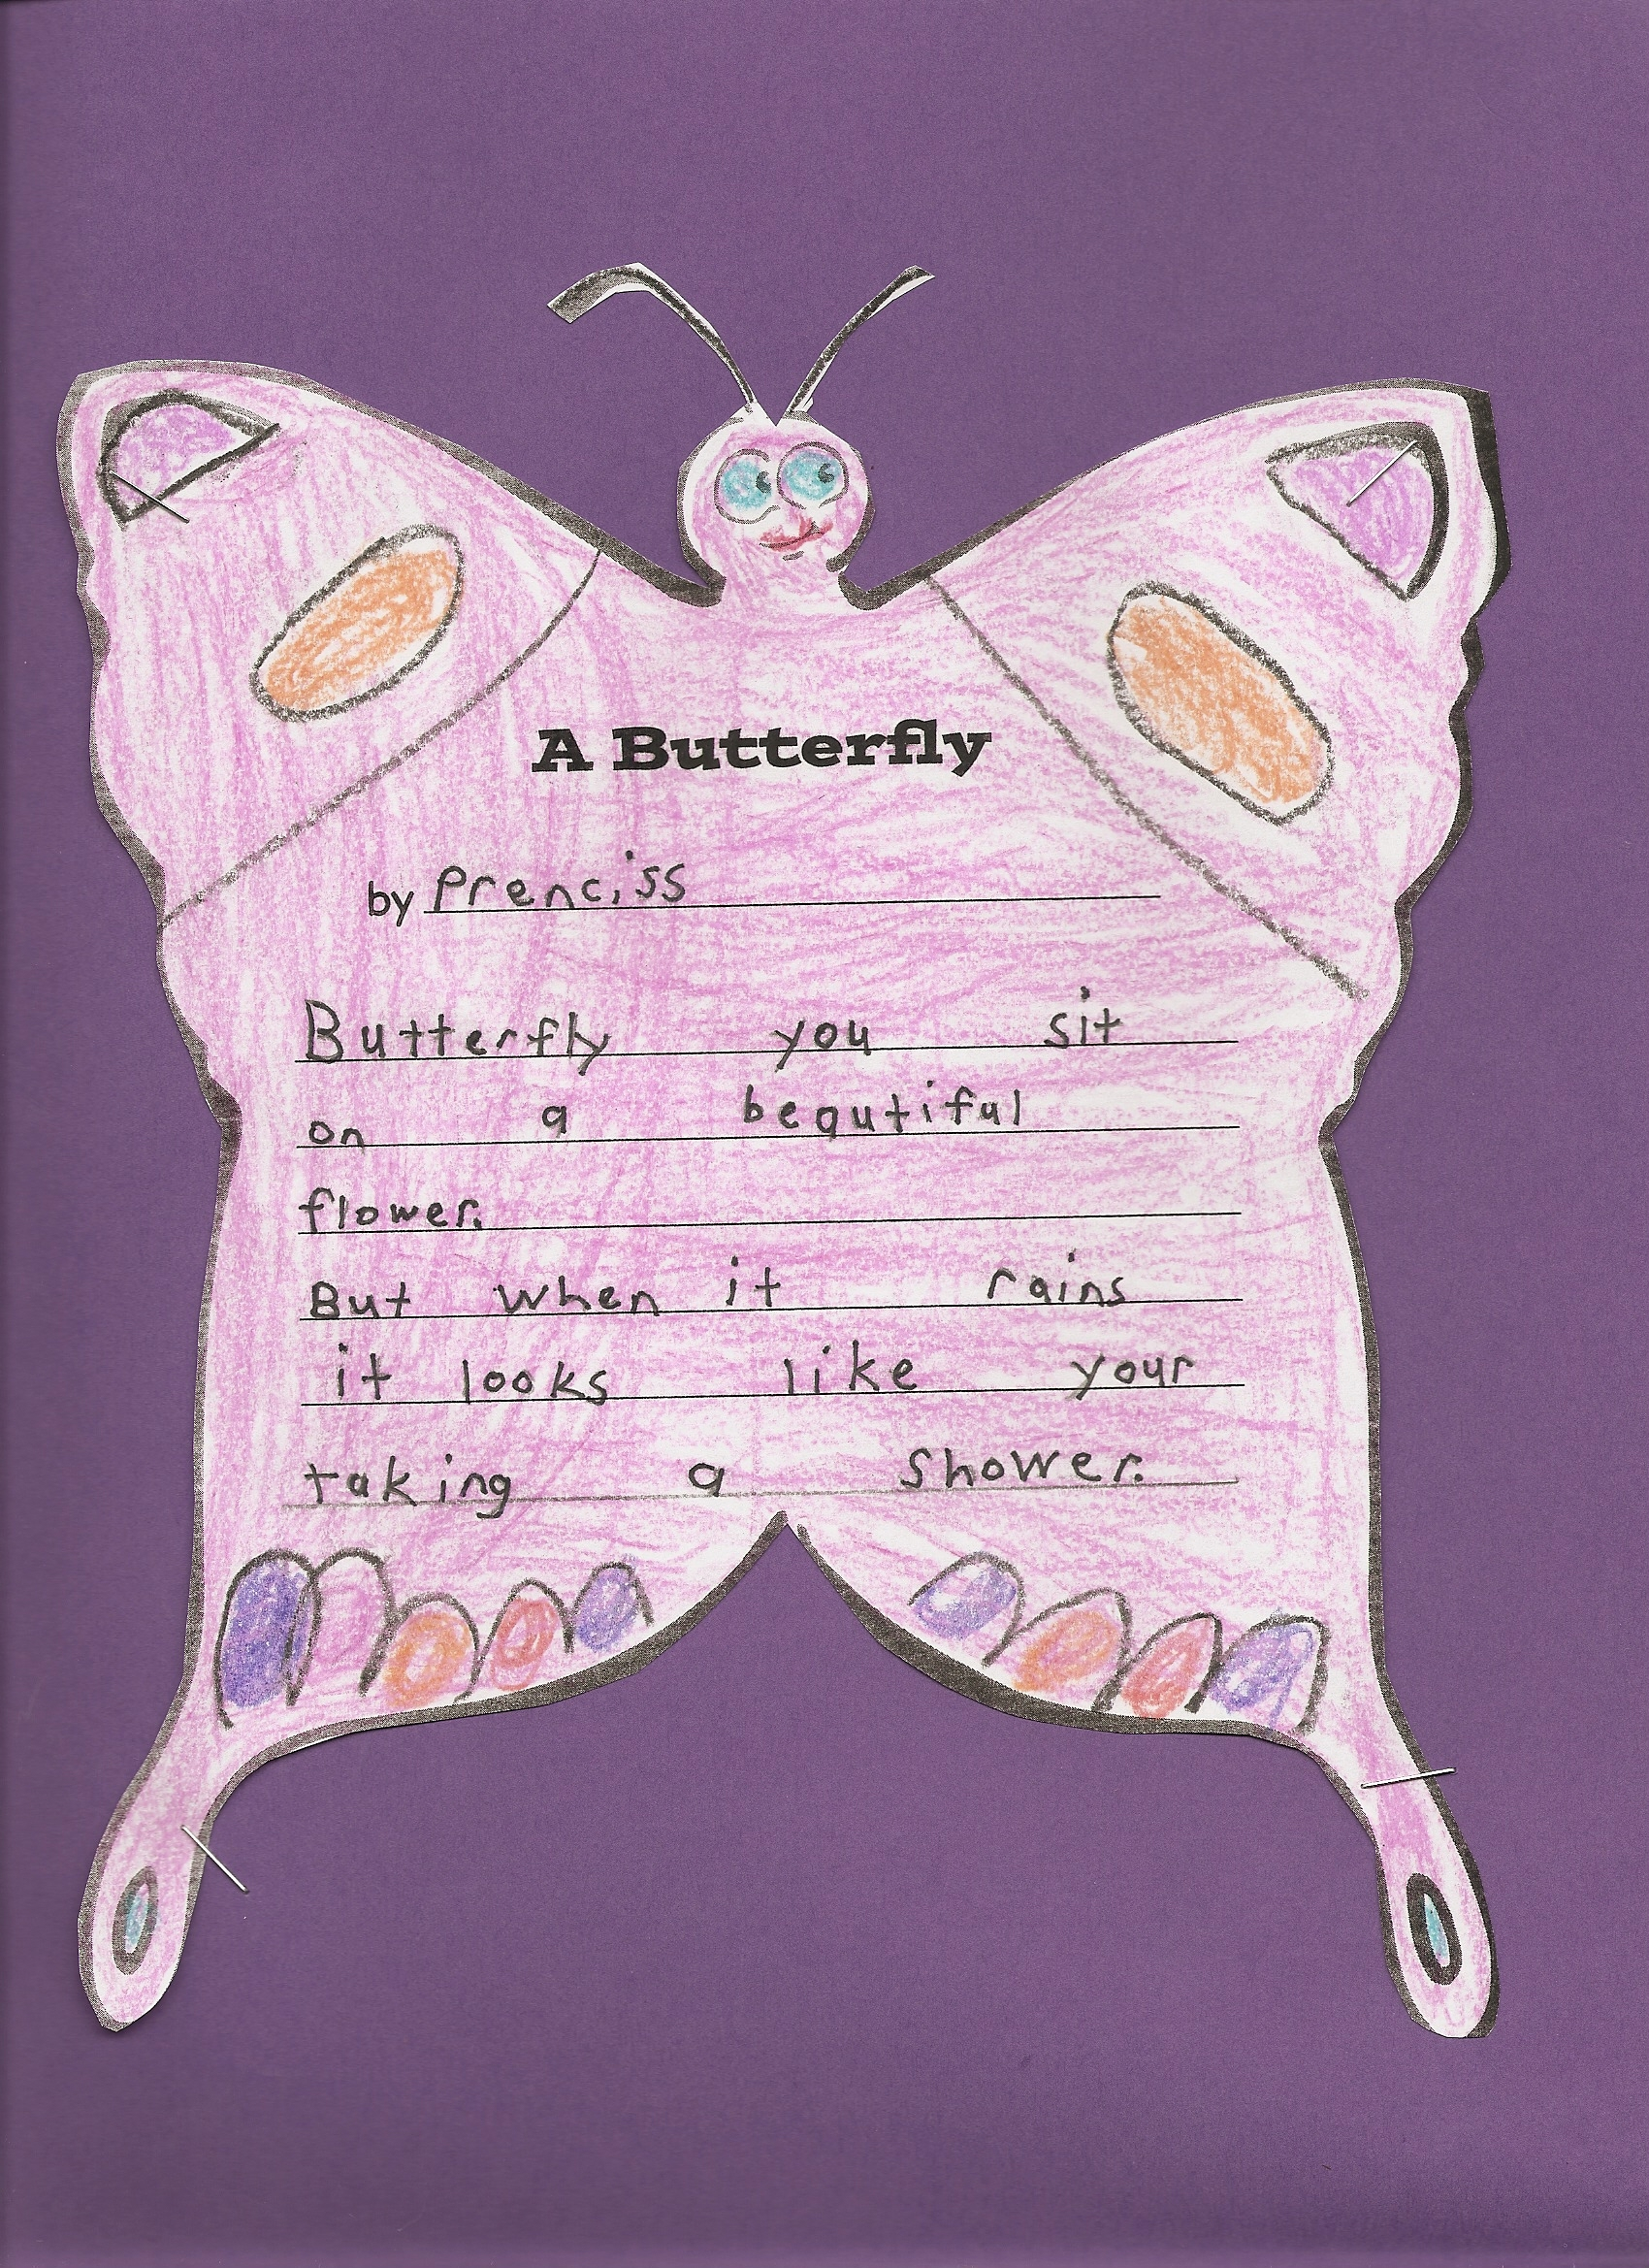 An Old Poem About Butterflies Using Metaphor 70